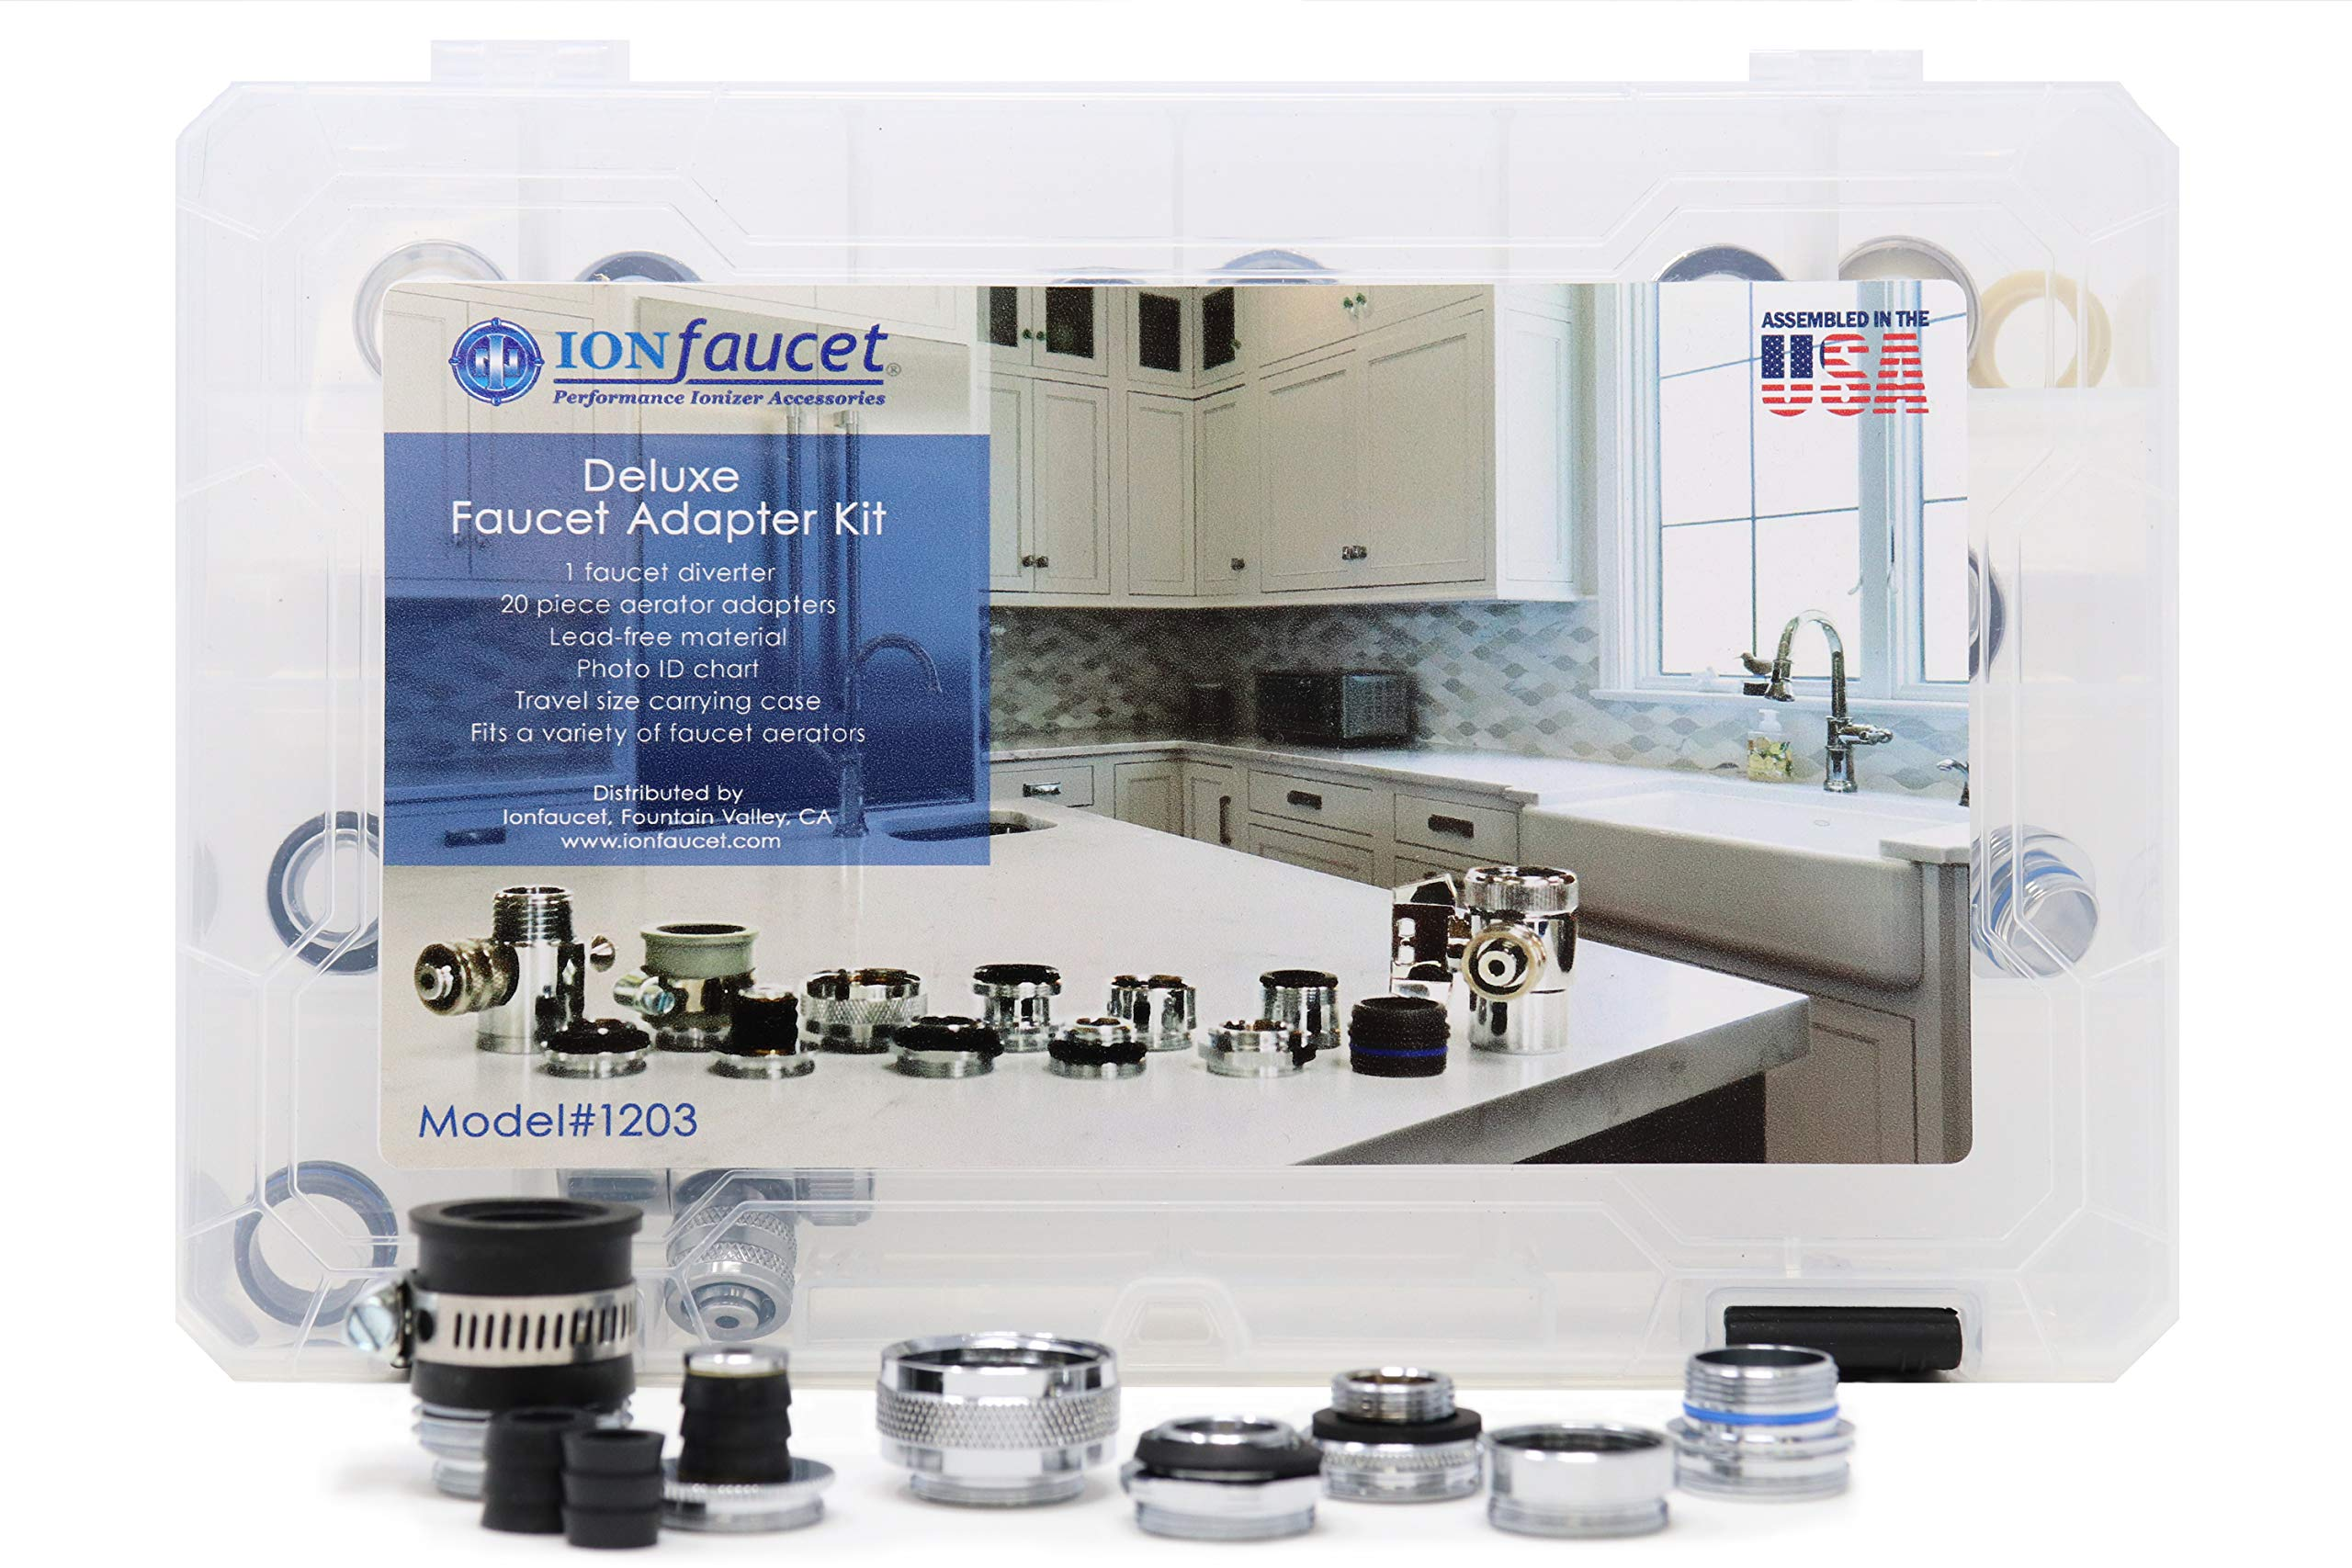 22 Piece aerator adapter kit by Ionfaucet